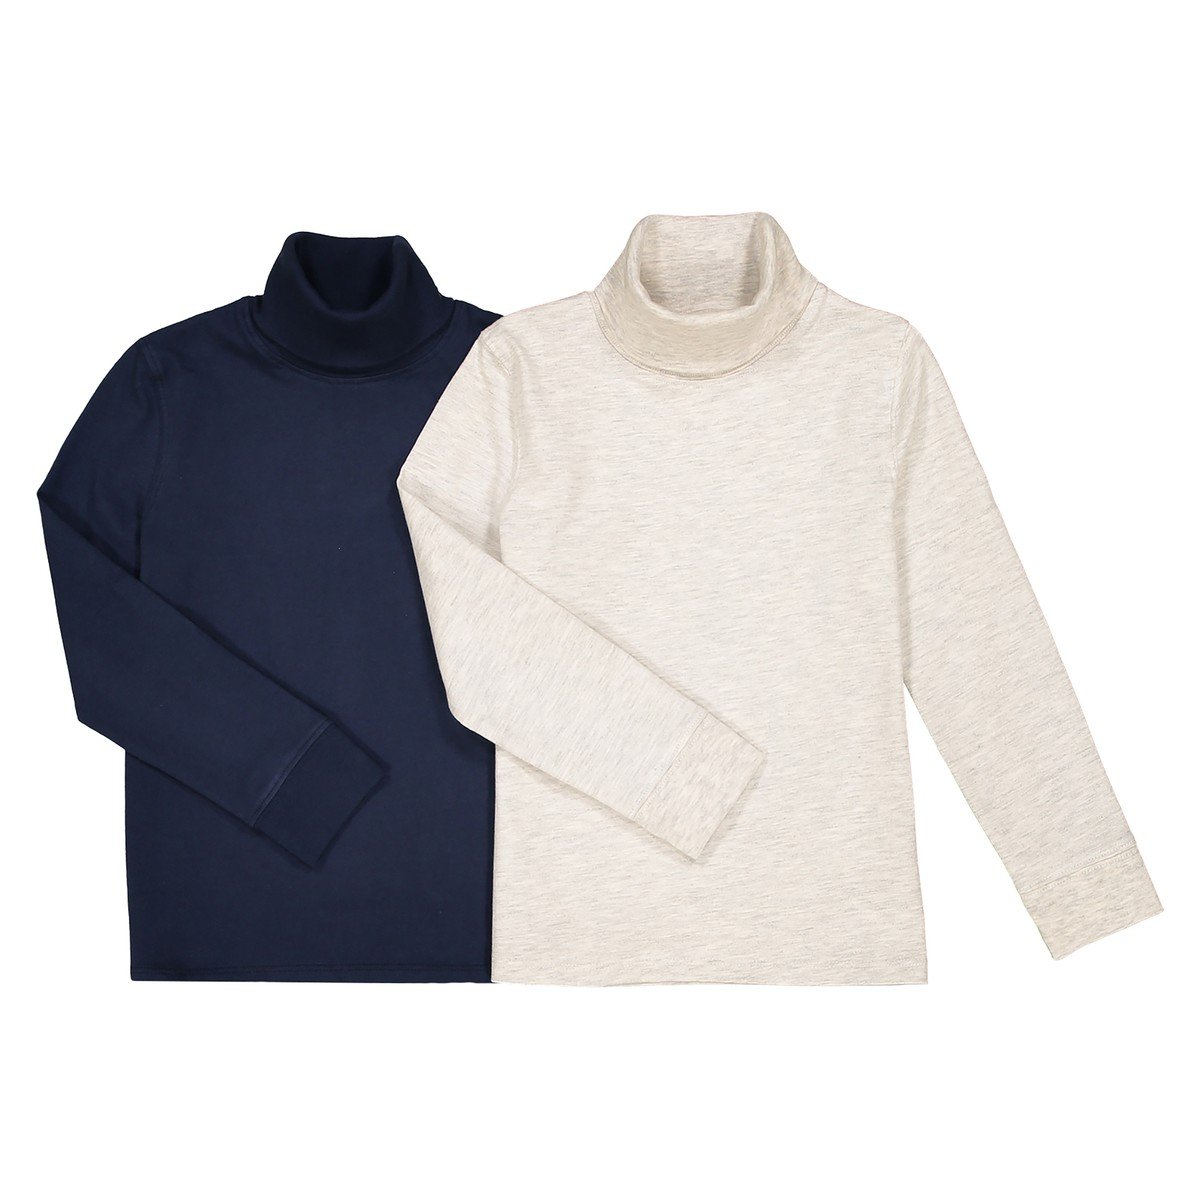 3-12 Years La Redoute Collections Big Boys Pack of 2 Cotton Roll Neck Shirts